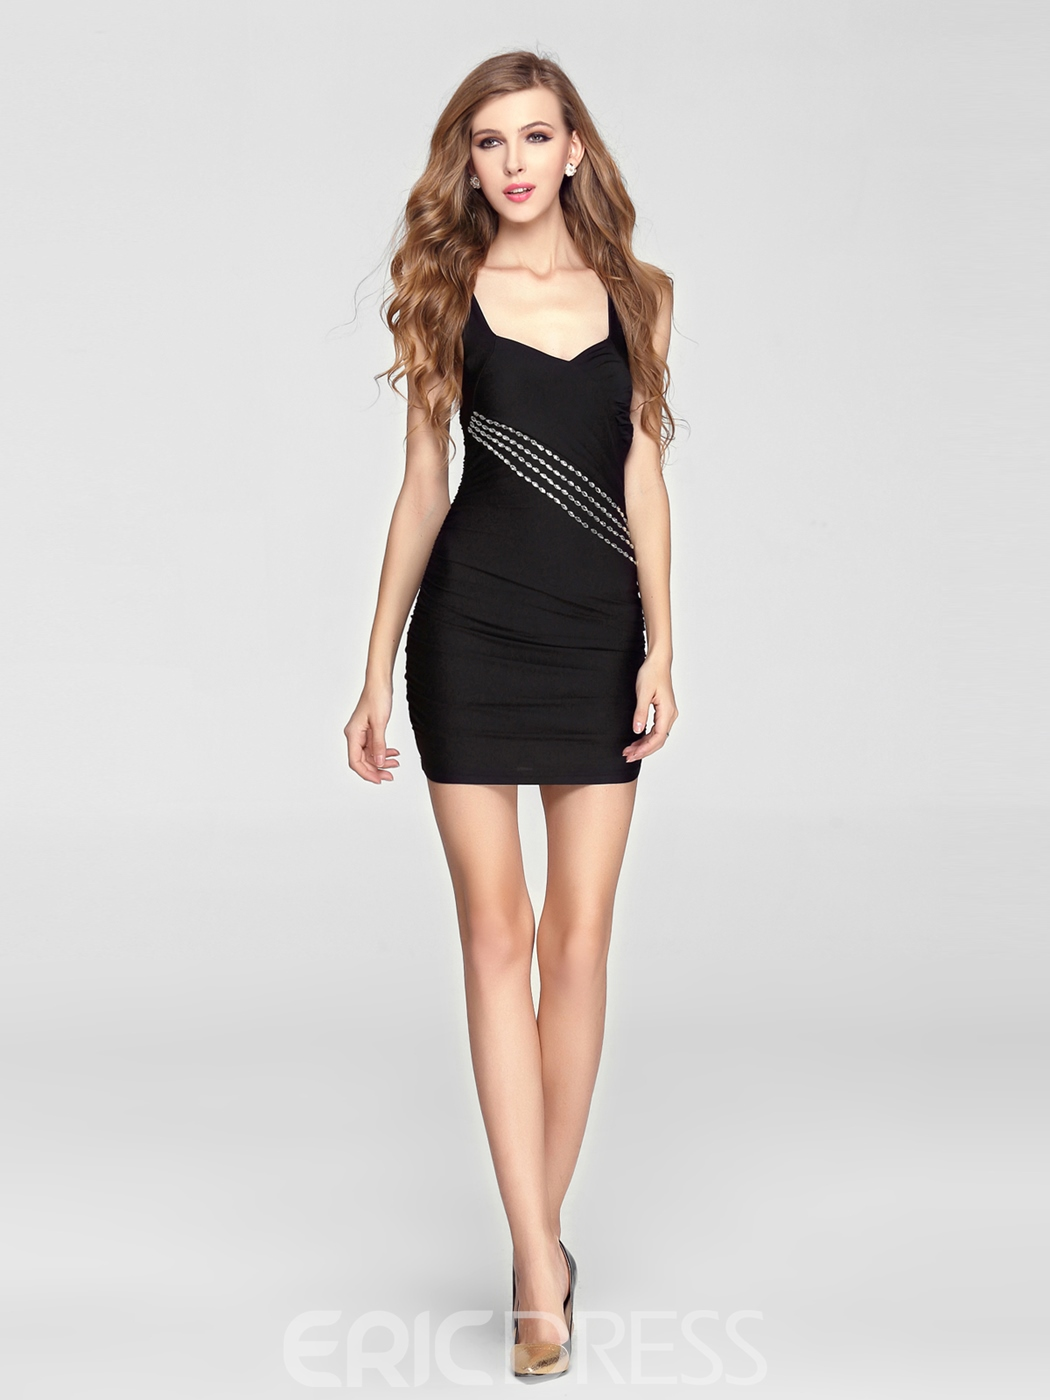 Chic Sheath/column Short/mini Straps Beadings Little Party Dress